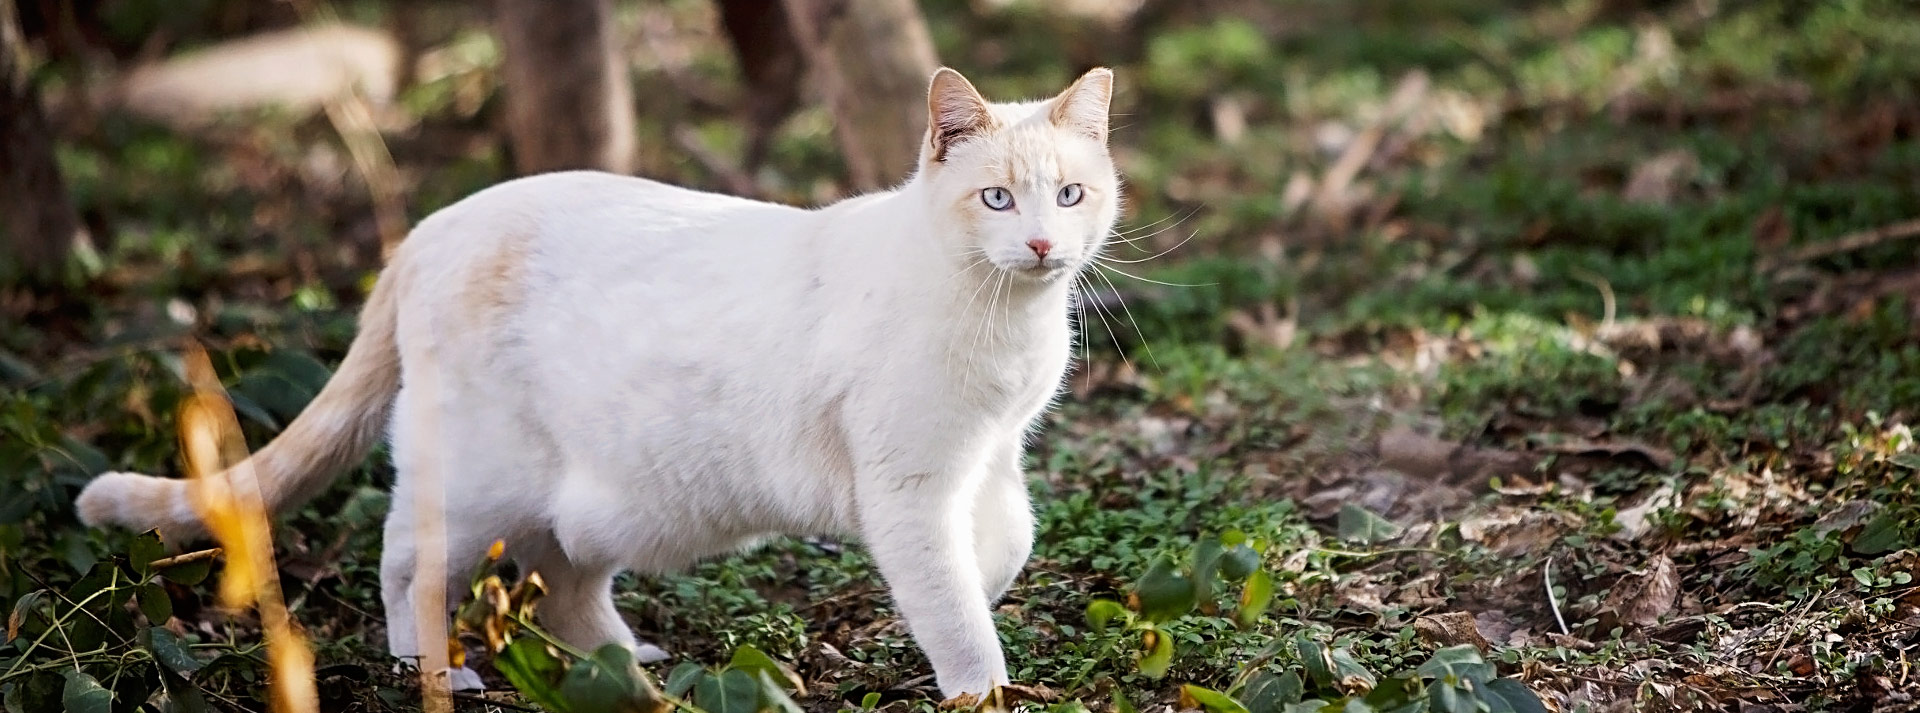 White community cat standing in woods